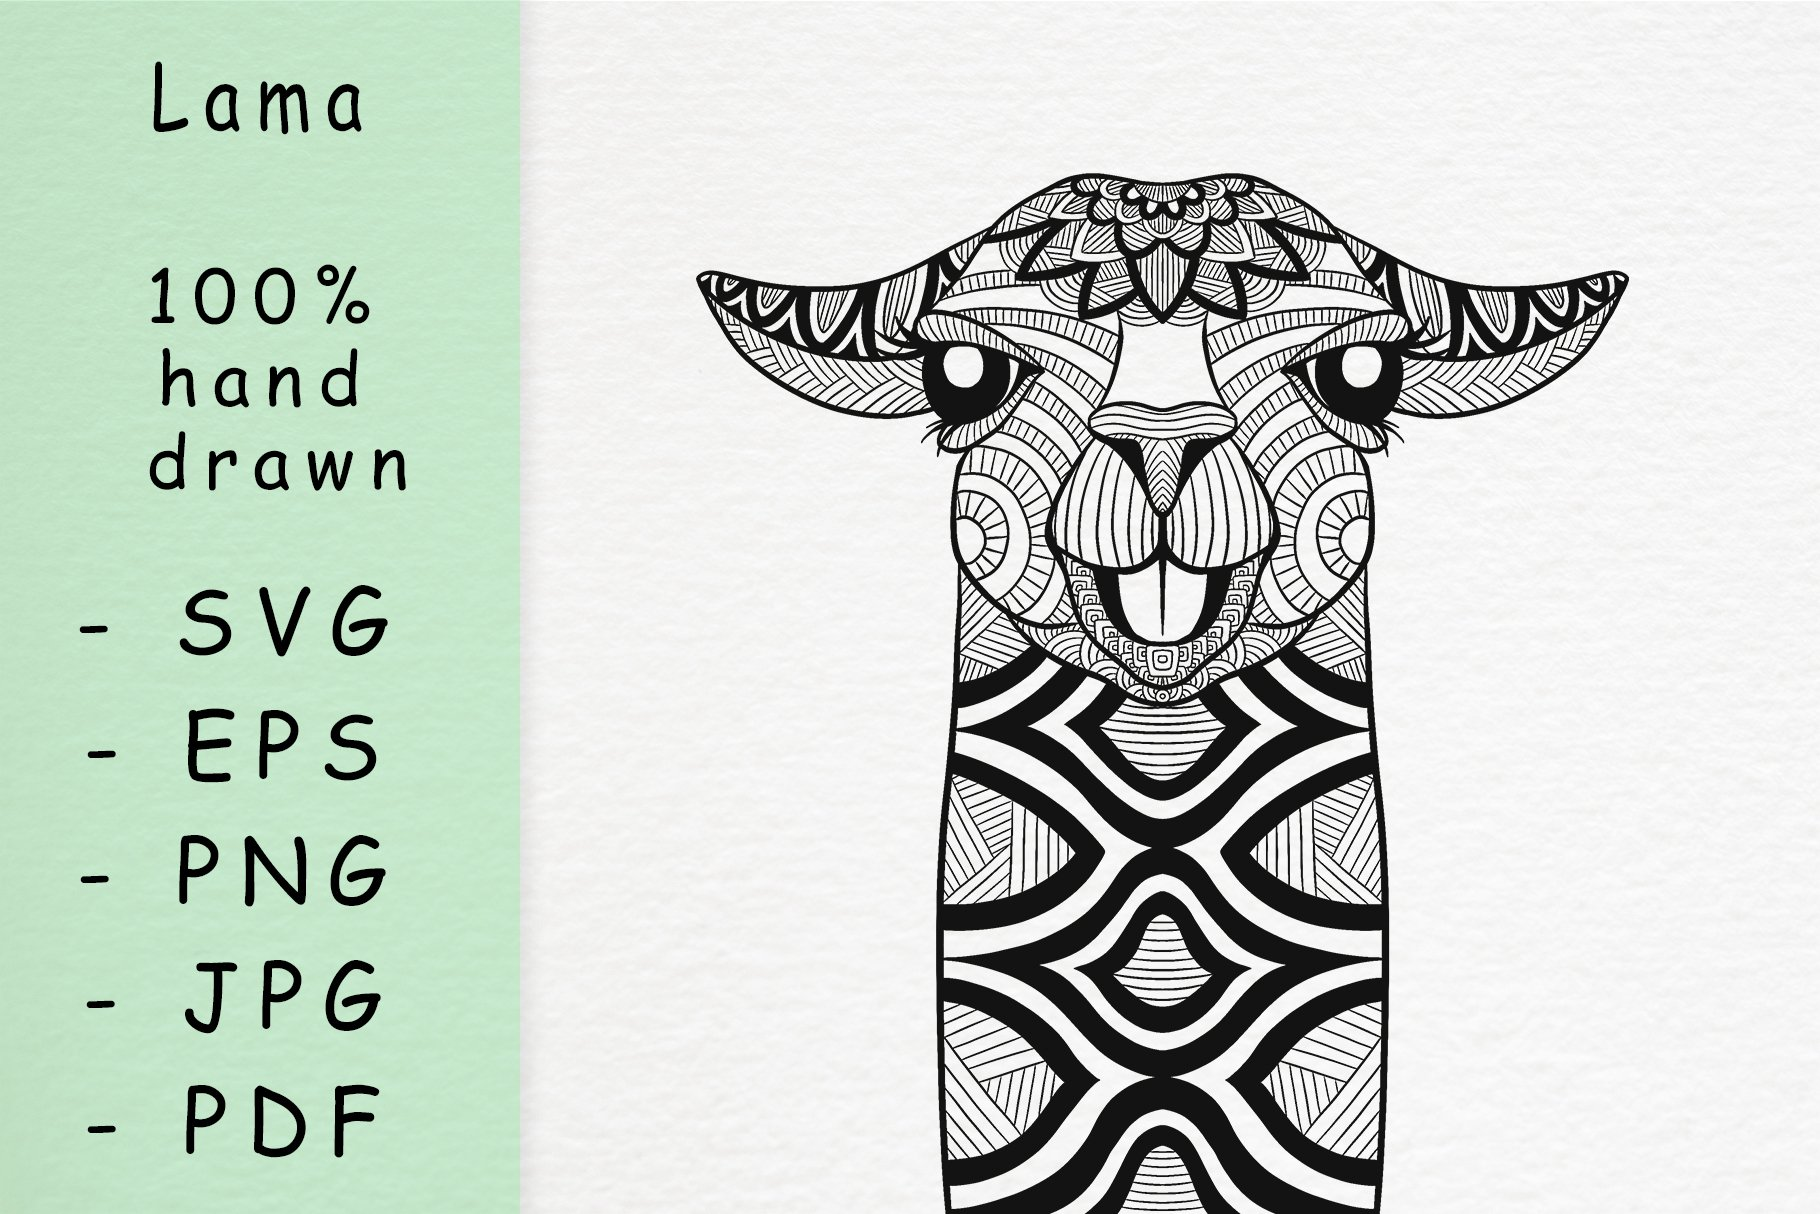 Hand drawn Lama with patterns example image 1